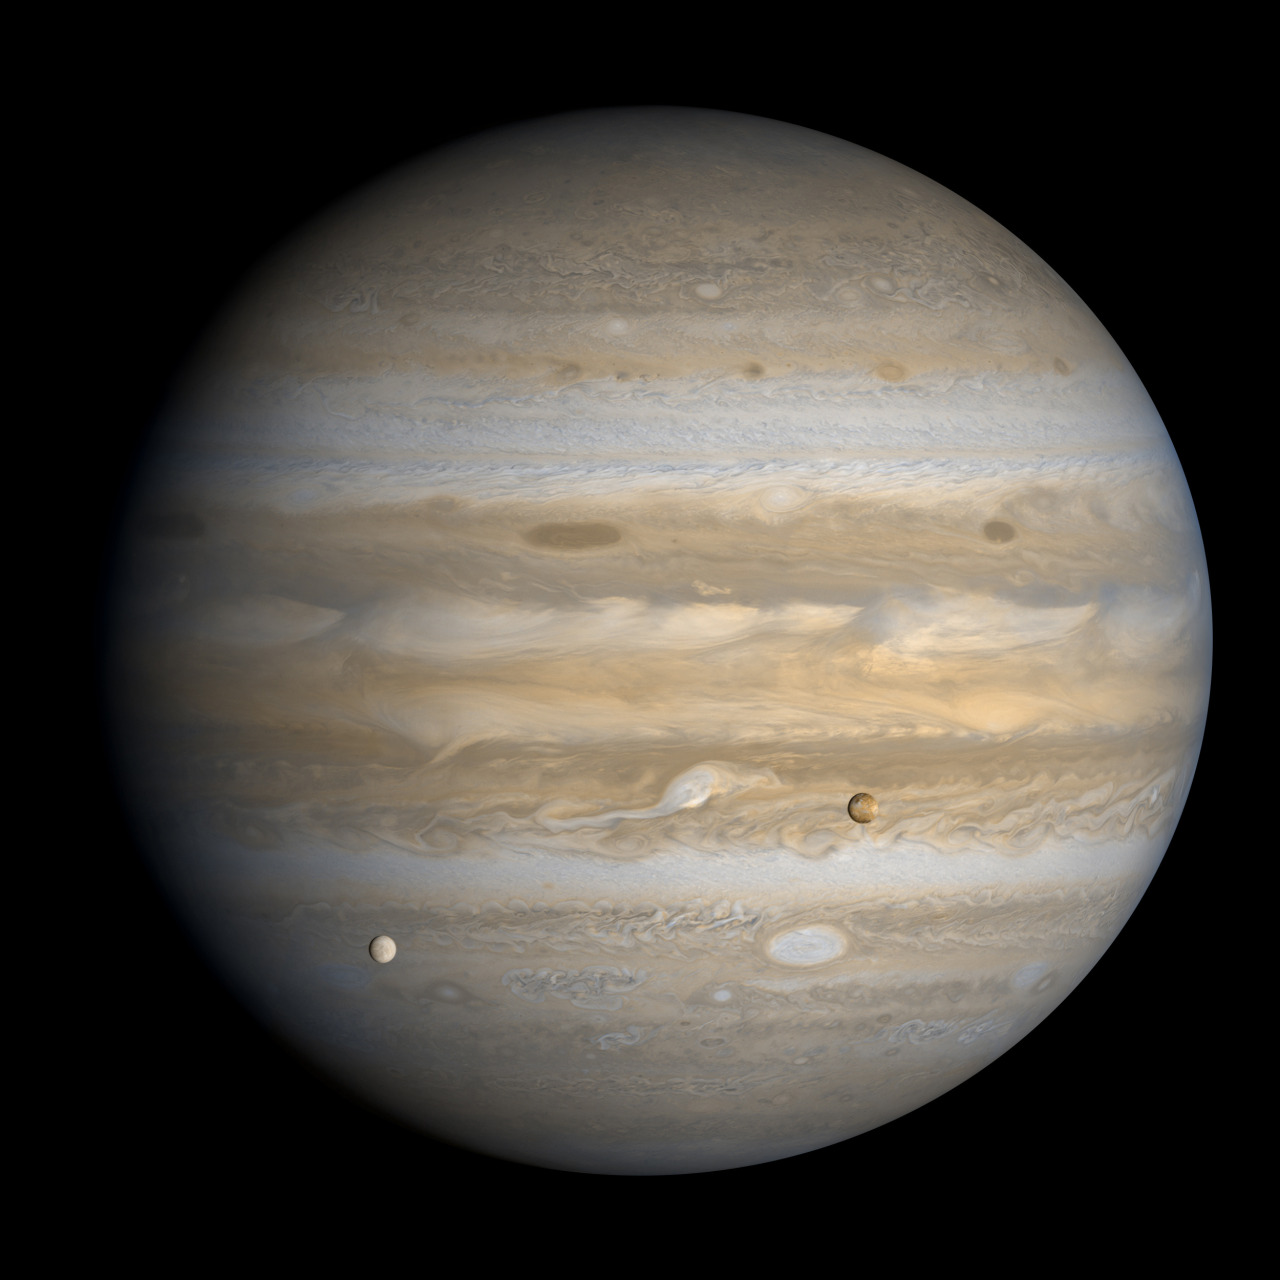 Jovian icy moon Europa and volcanic moon Io transit the turbulent face of Jupiter, in this image captured by Voyager 1 on February 27, 1979 from 4,536,010 miles away (image mosaic credit: NASA/JPL/Björn Jónsson).